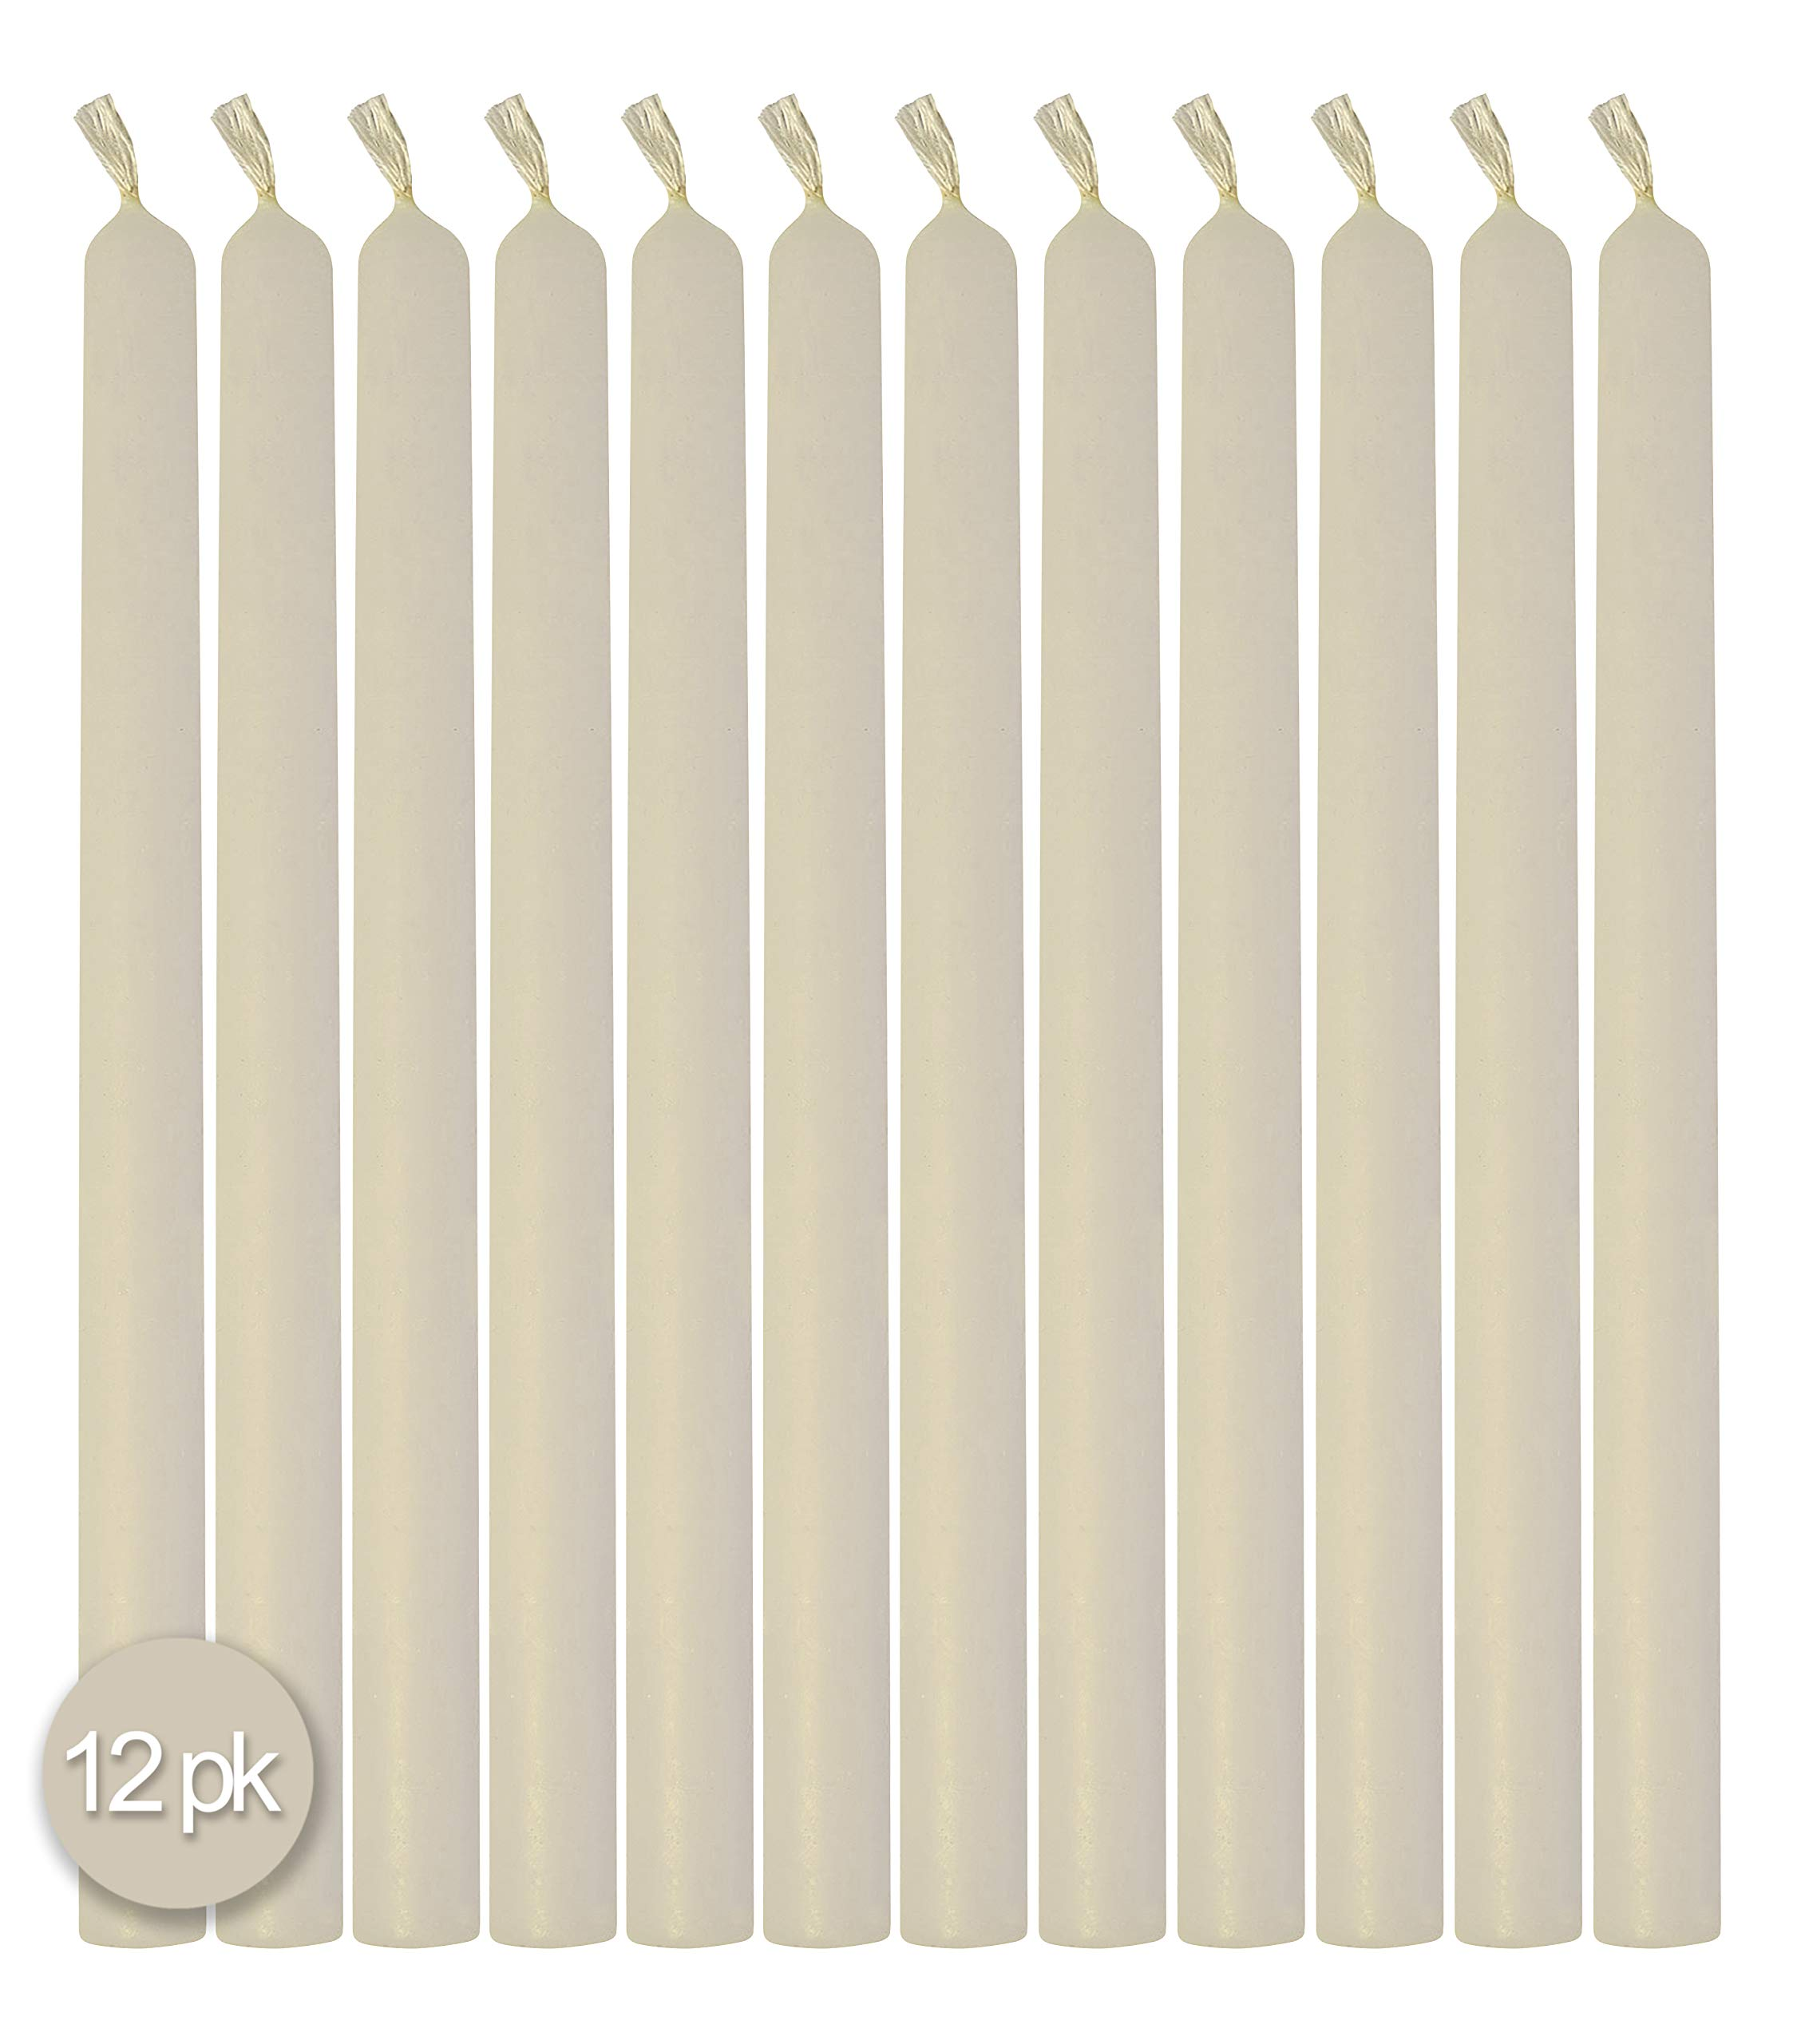 Hyoola 10'' Beeswax Taper Candles 12 Pack - Handmade, All Natural, 100% Pure Scented Bee Wax Candle - Tall, Decorative, White - 10 Hour Burn Time by Hyoola